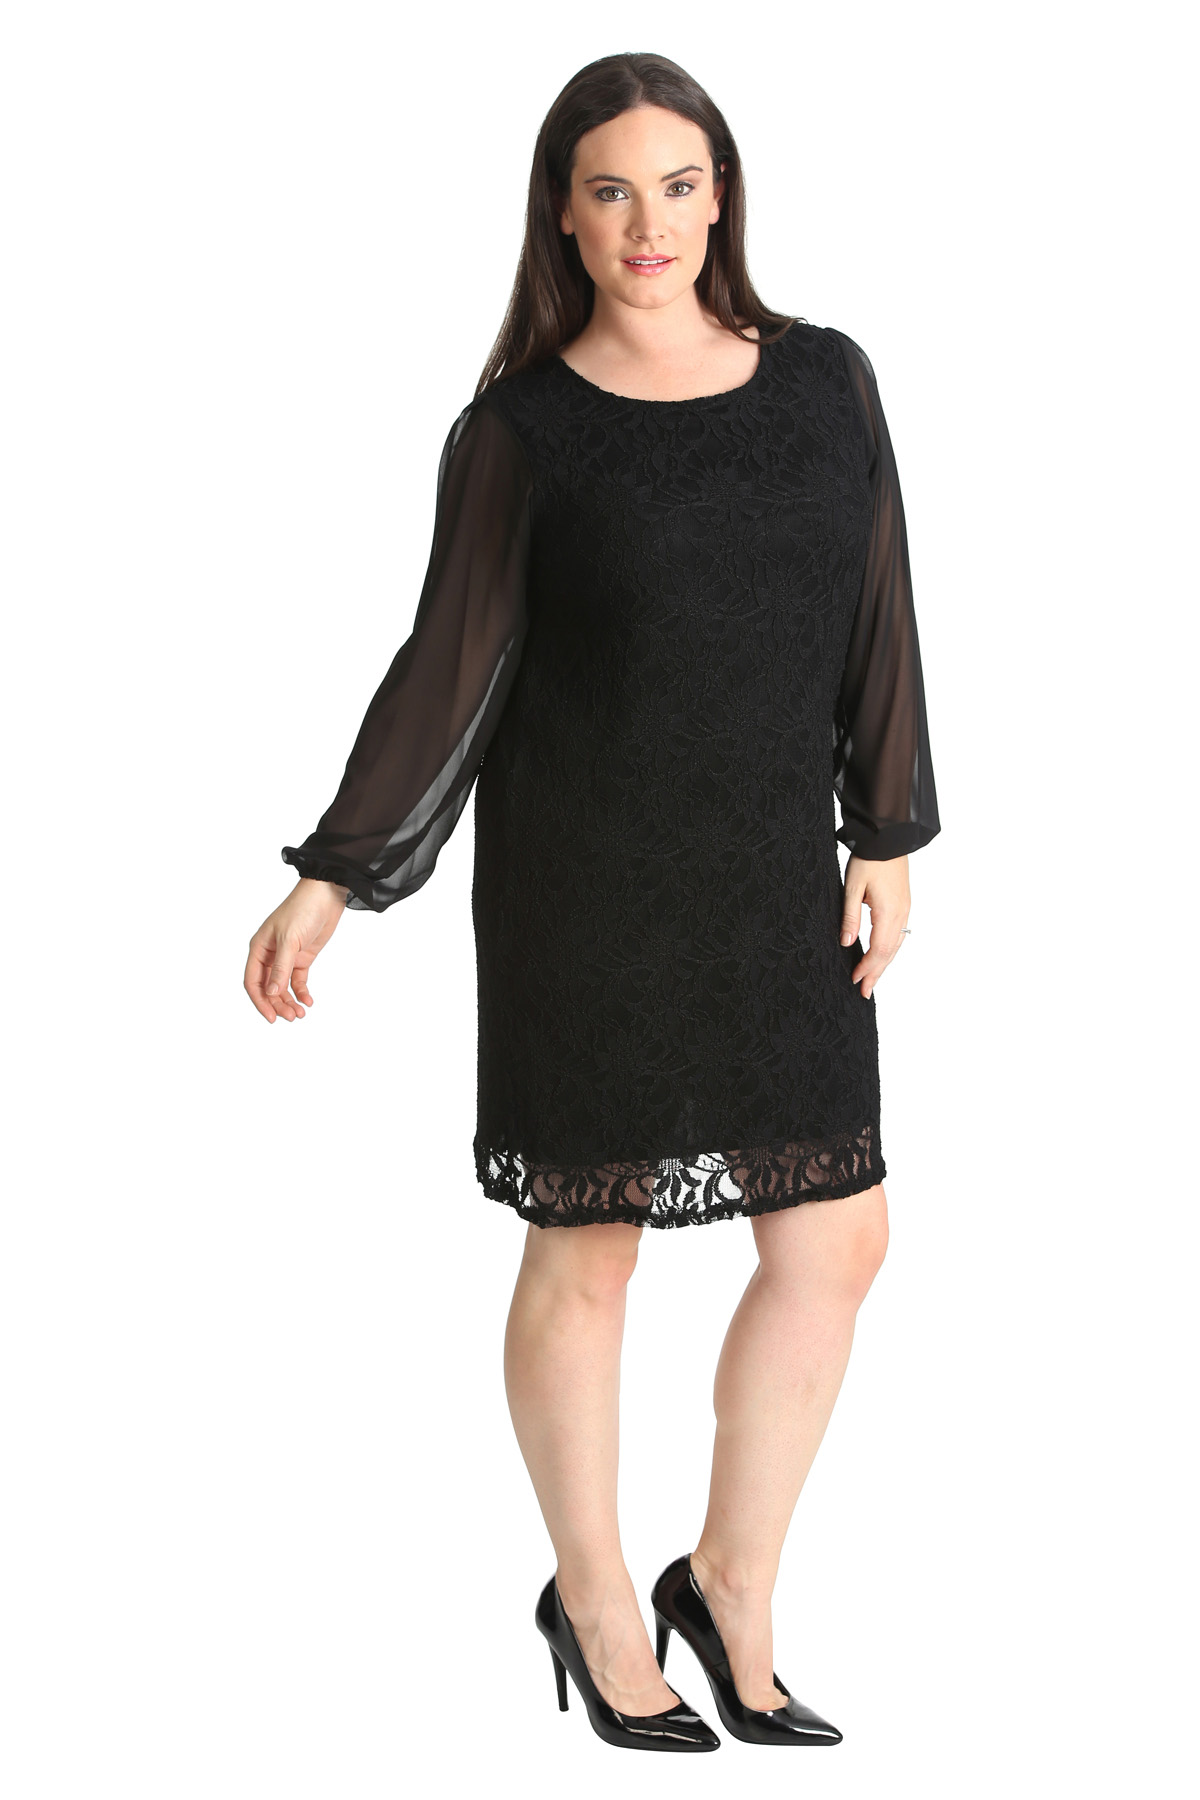 Find a great selection of plus size clothing at trueiupnbp.gq Shop dresses, jeans, tops and more in the latest fashions and trends for plus size clothing. Free shipping and returns.